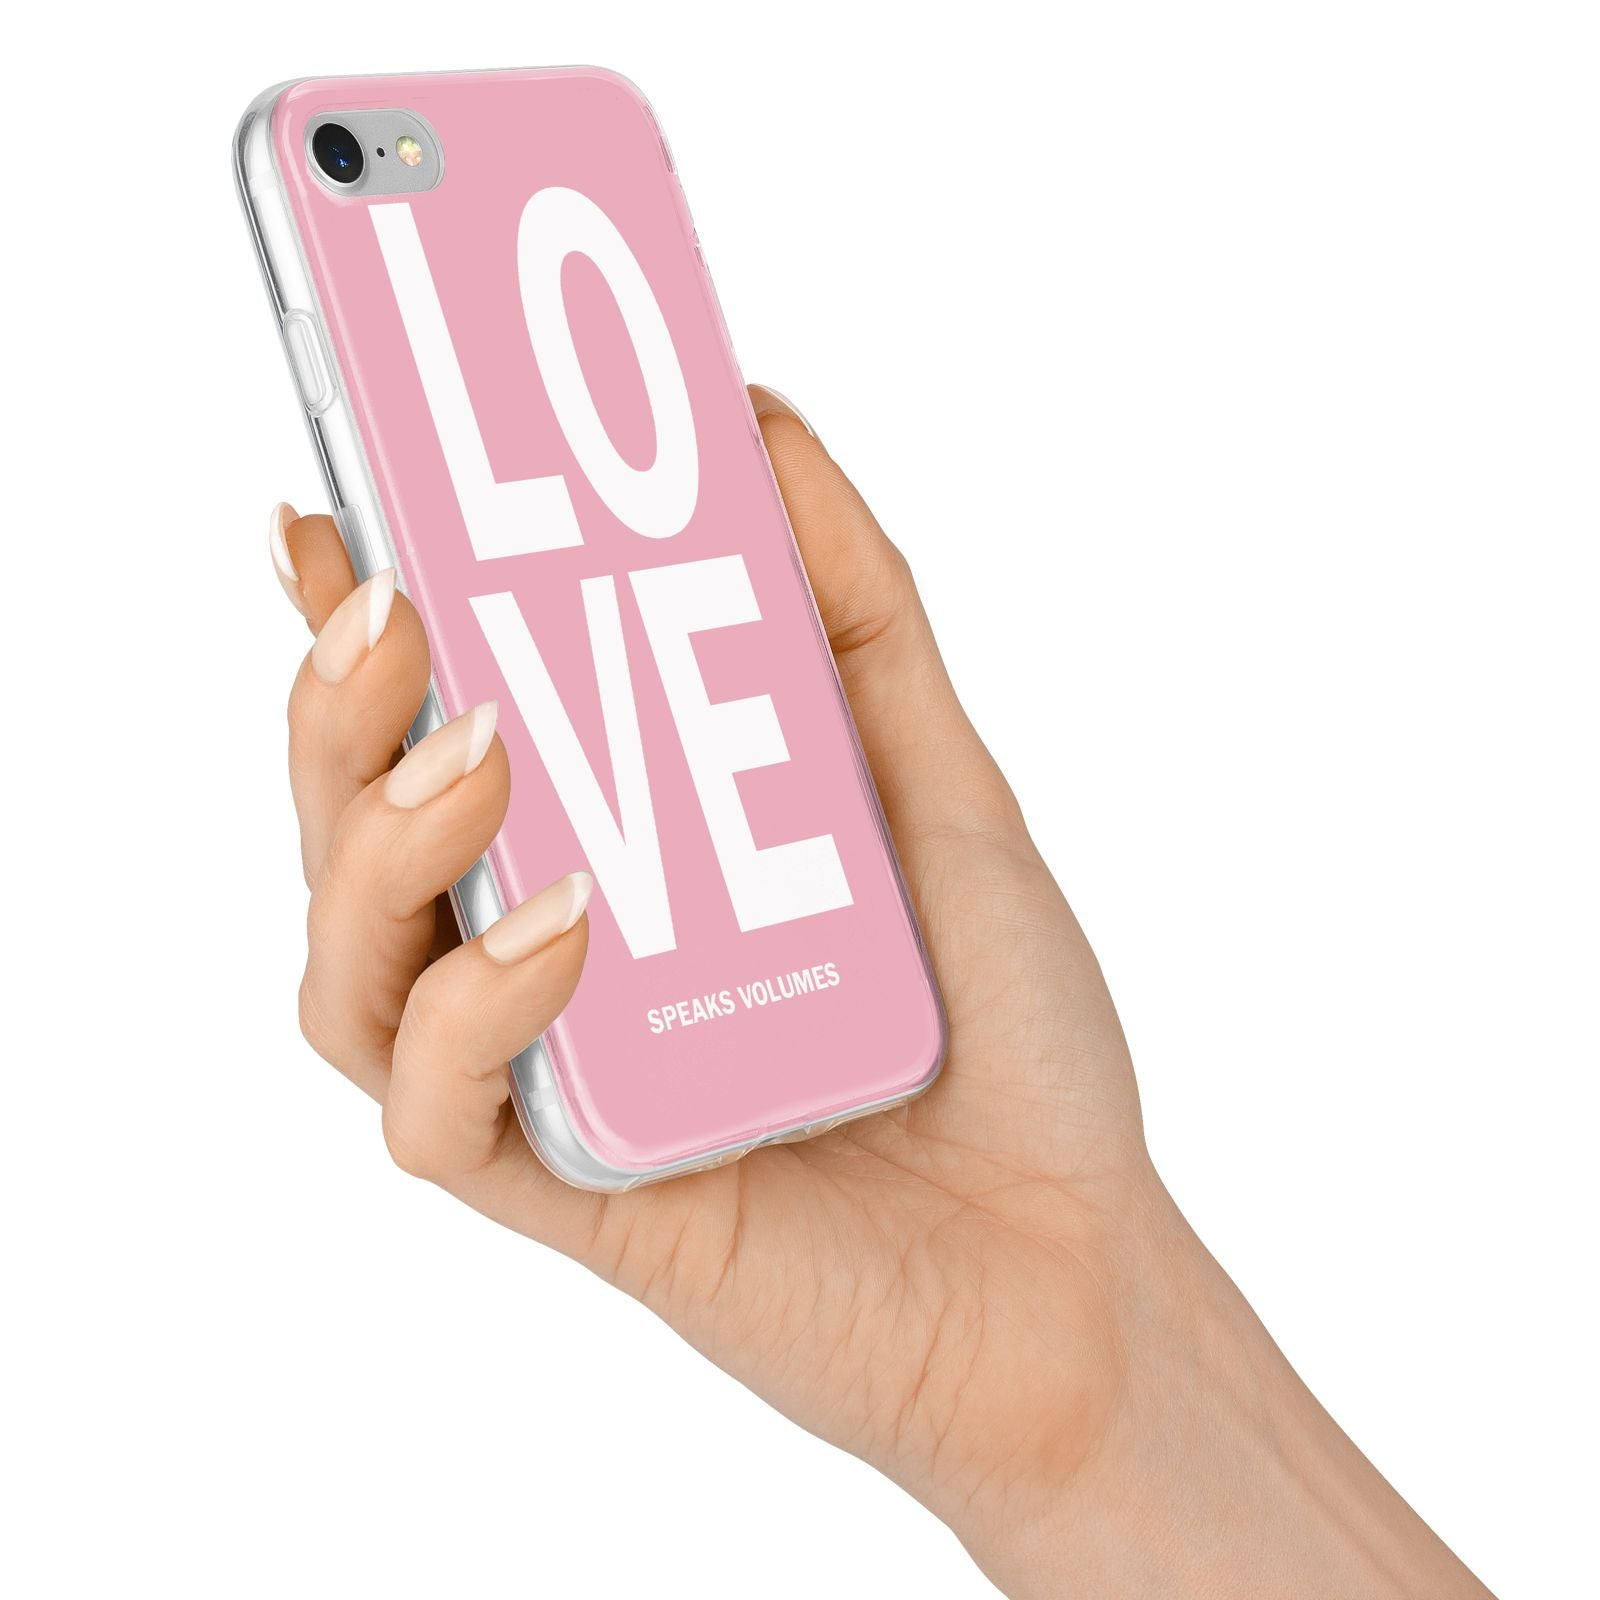 Valentines Love Speaks Volumes iPhone 7 Bumper Case on Silver iPhone Alternative Image